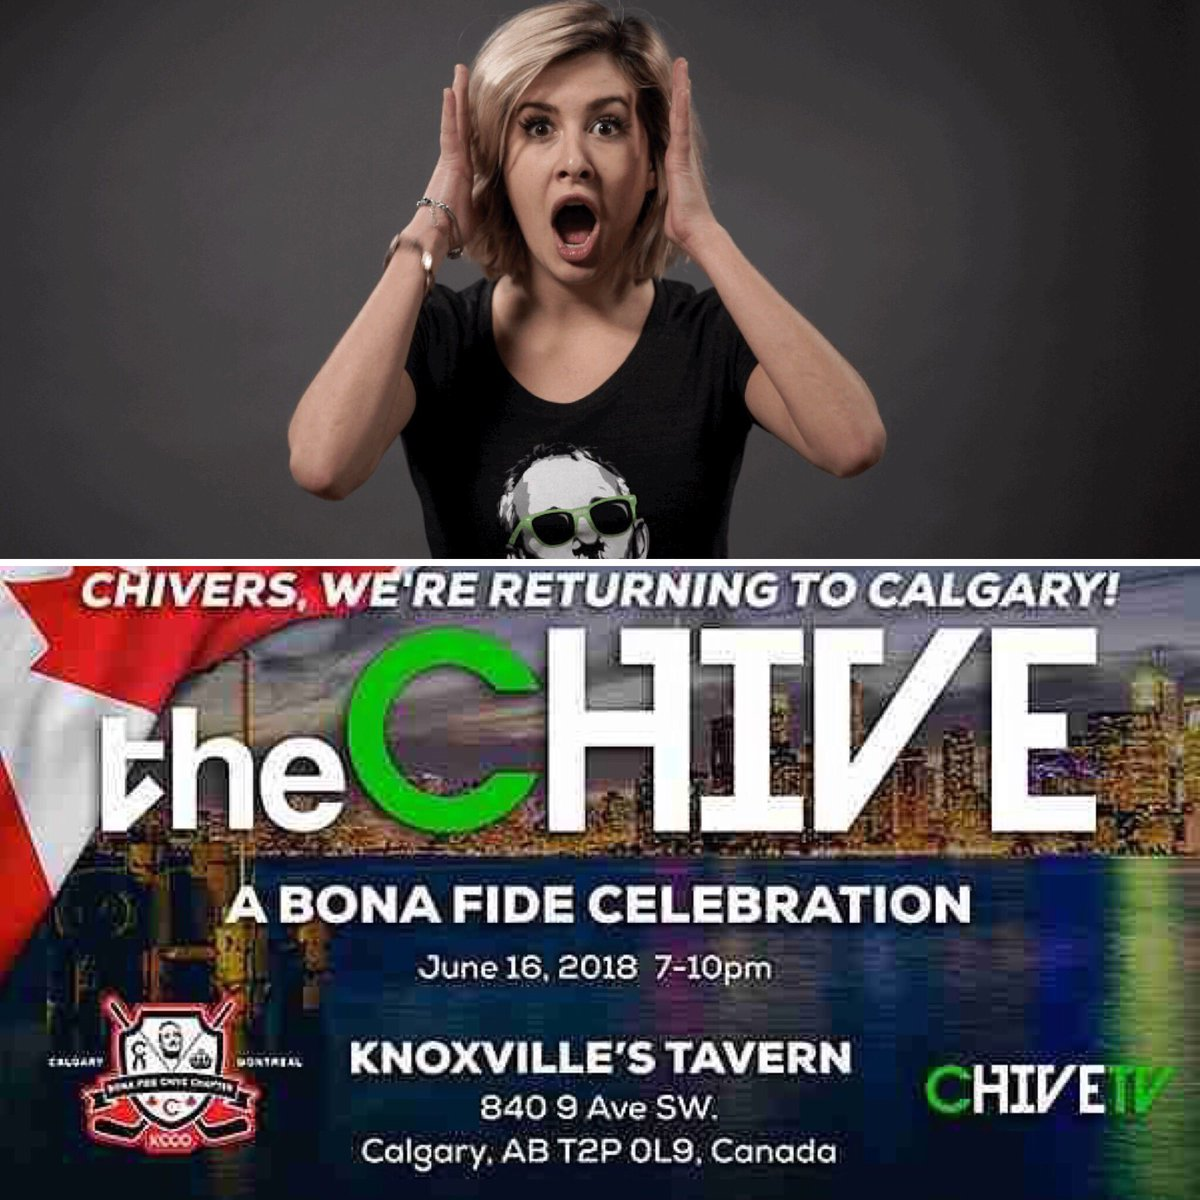 Chivers chivettes